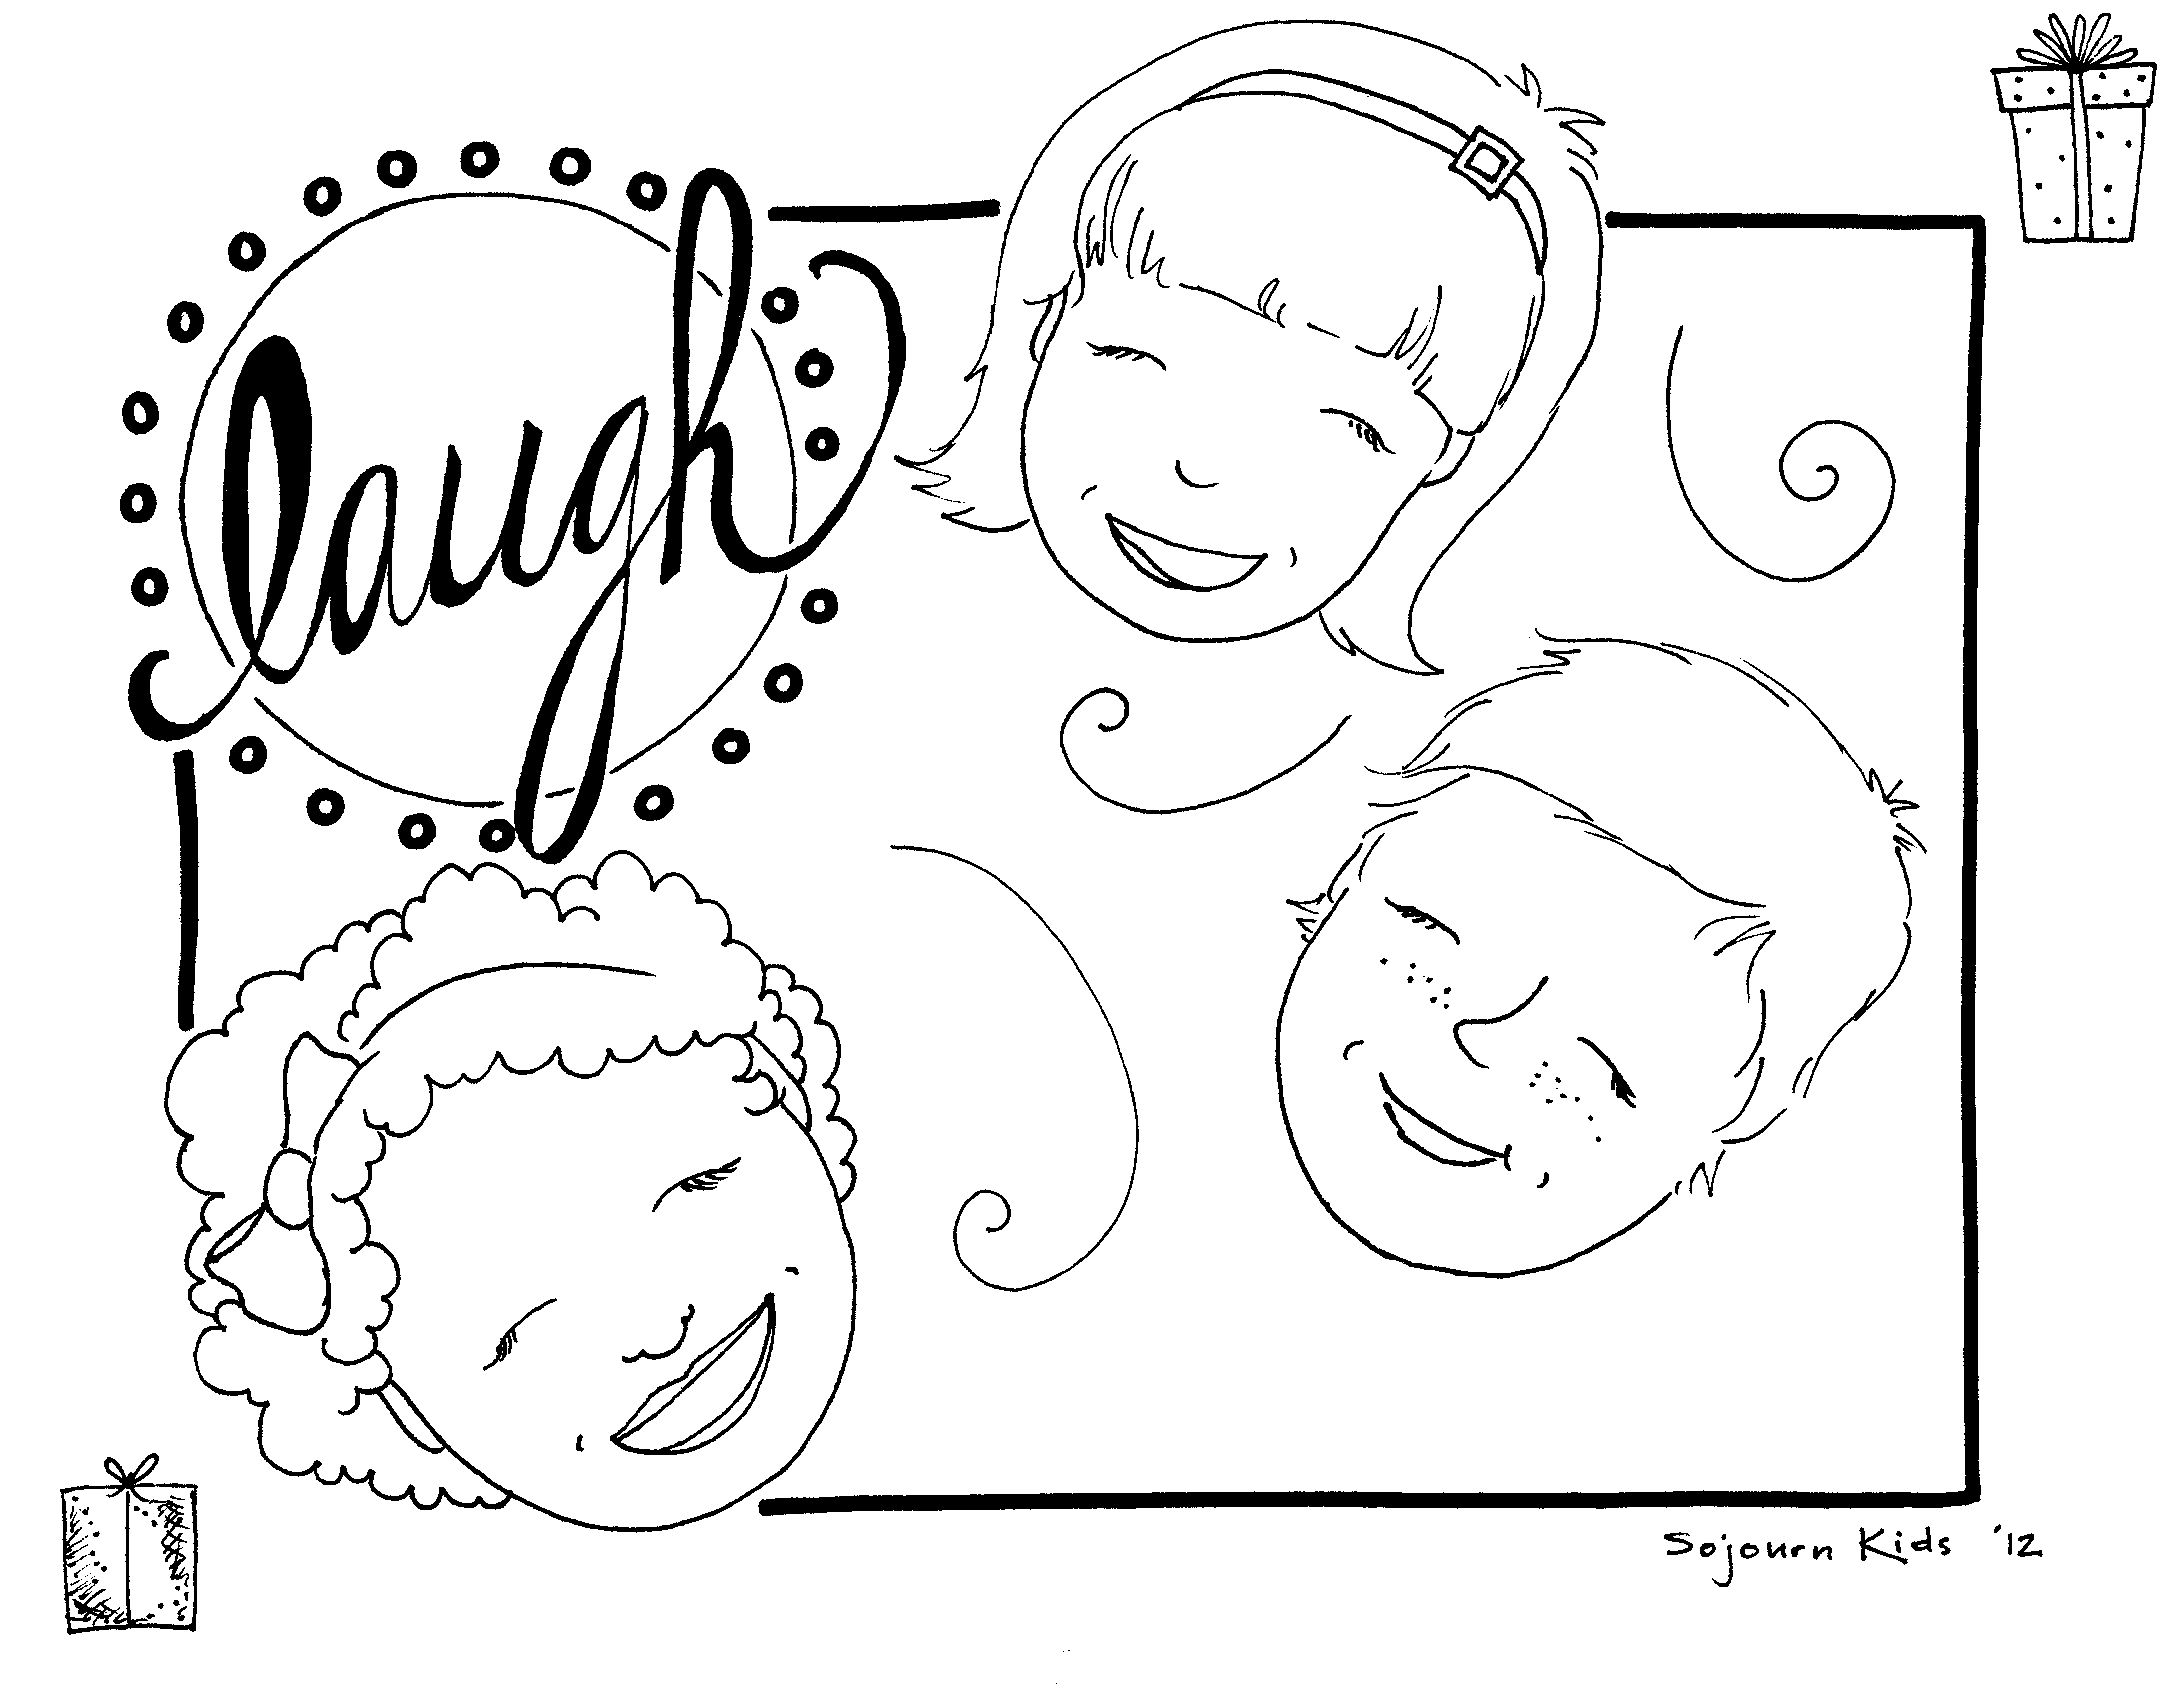 Worship God Coloring Page Coloring Pages Inspirational Animal Coloring Pages Jesus Coloring Pages